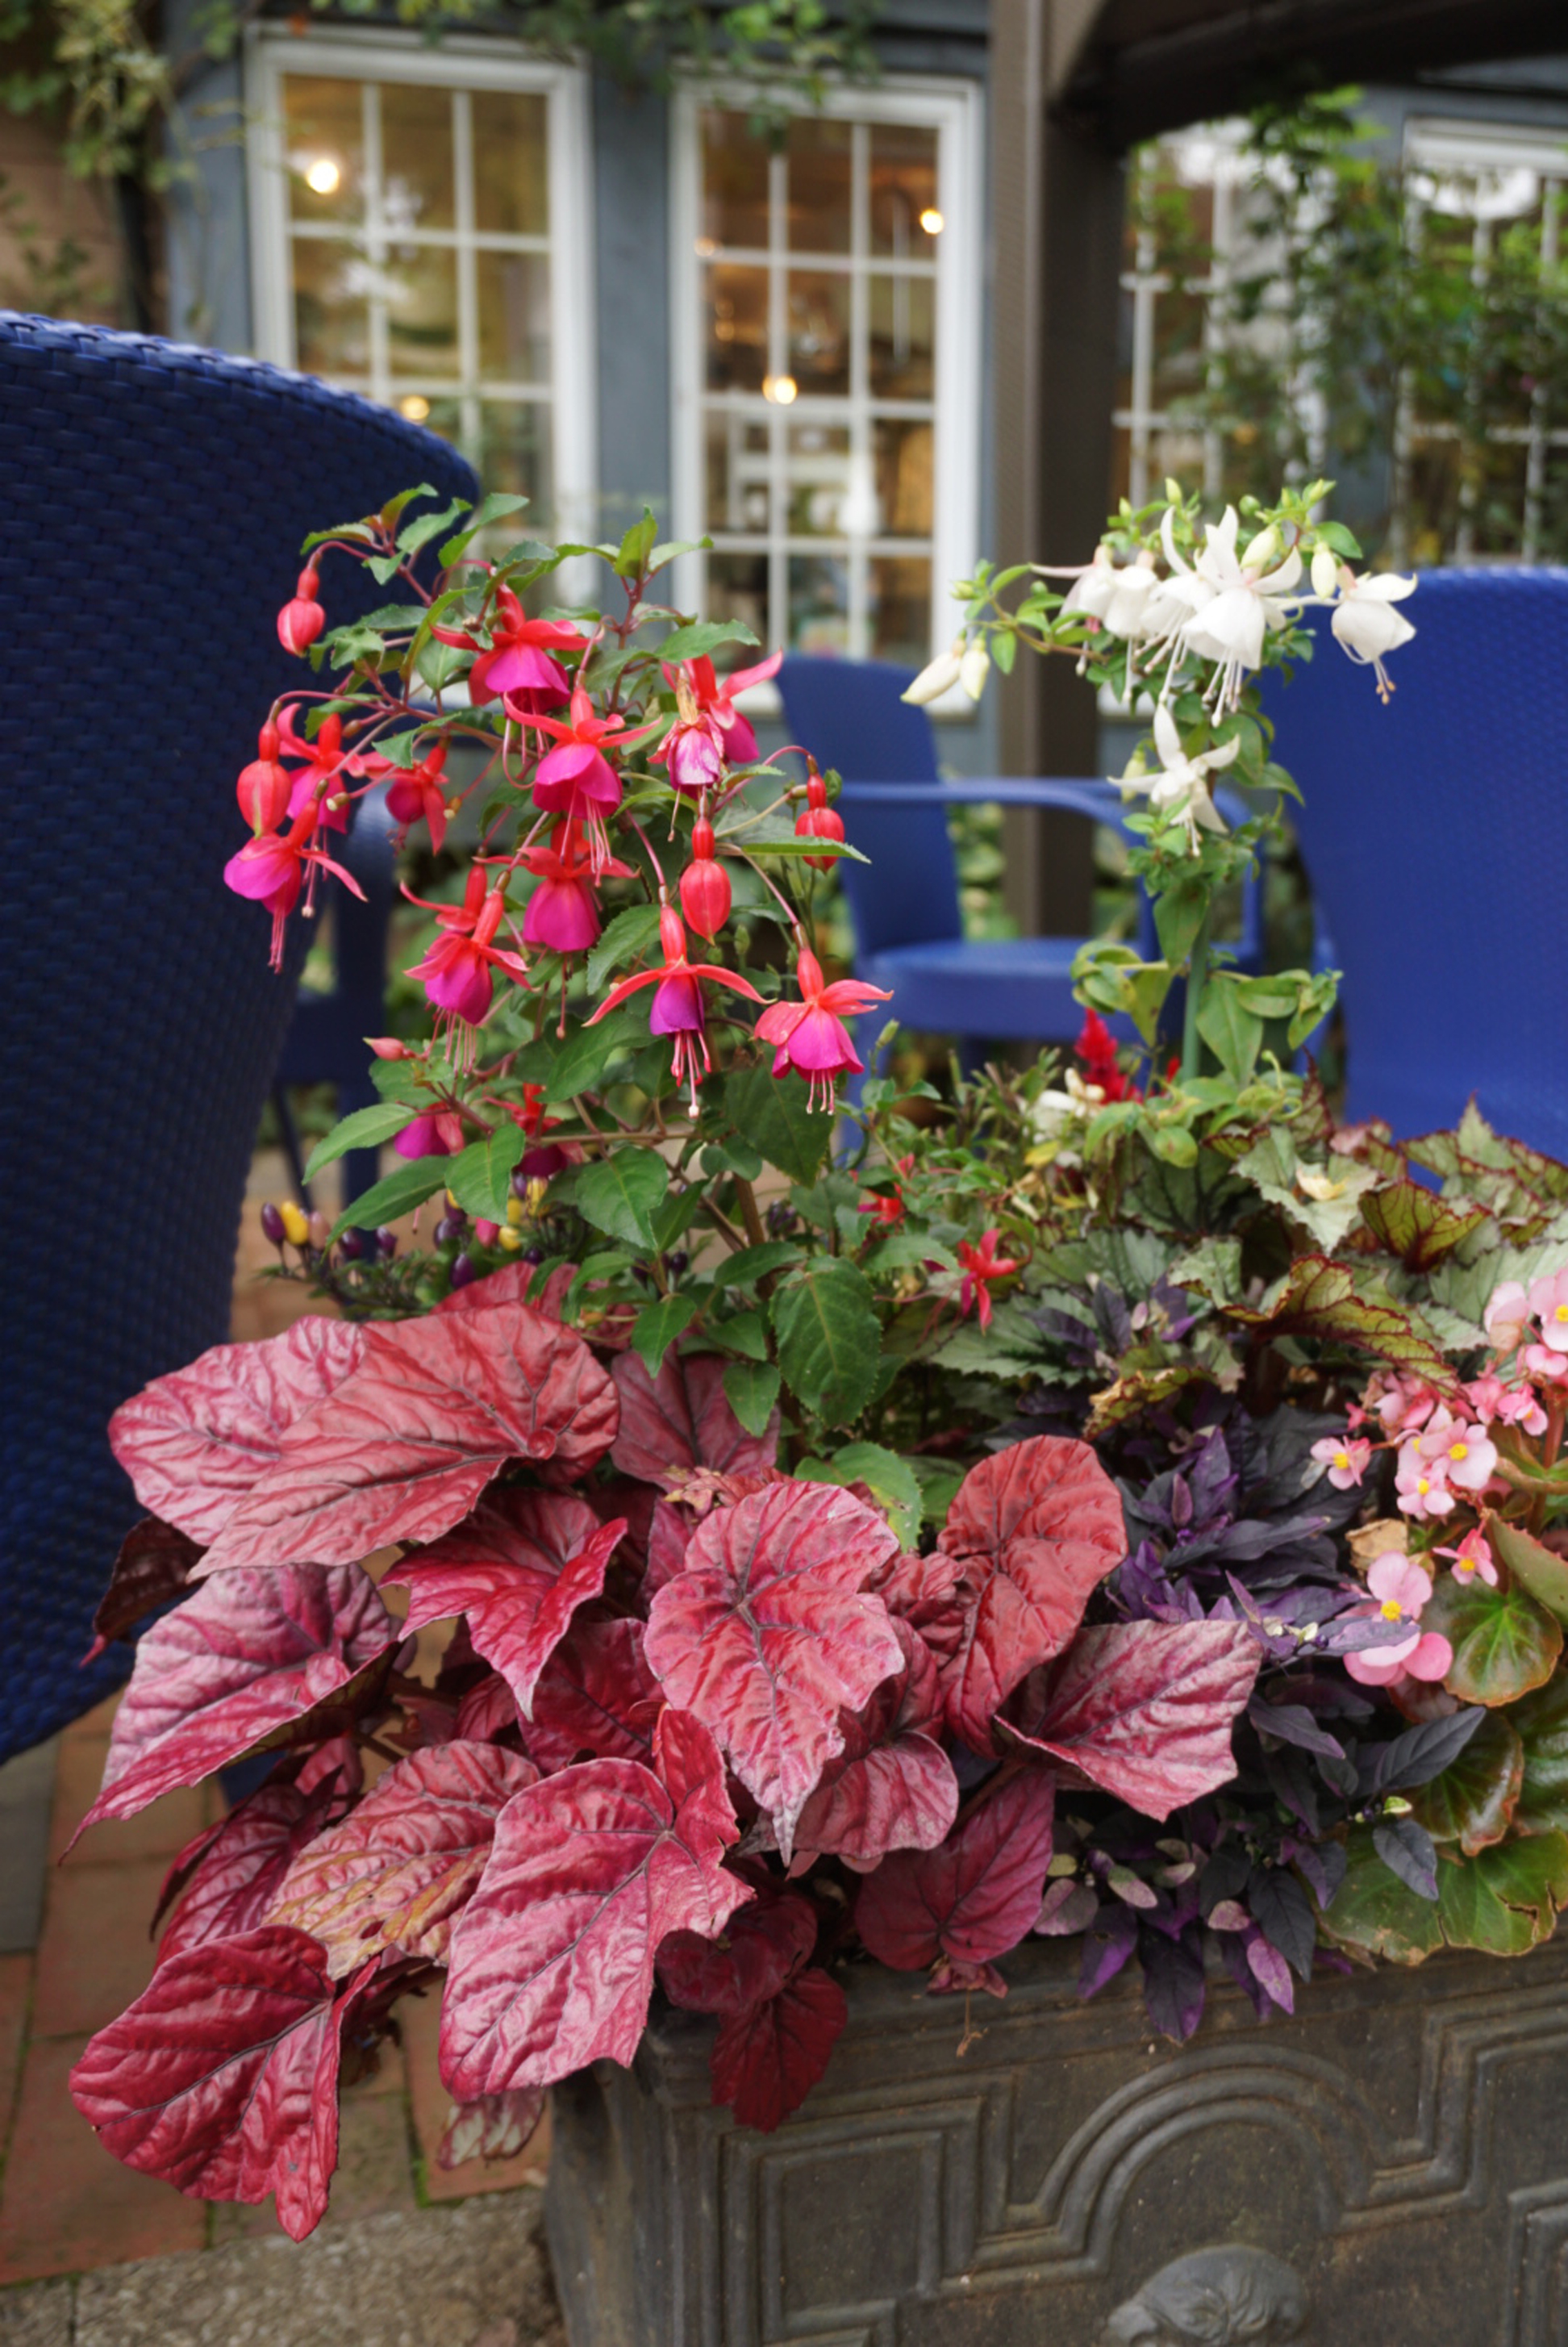 Broad-leaved begonias make a good foil for fuchsias (Michael Perry/PA)